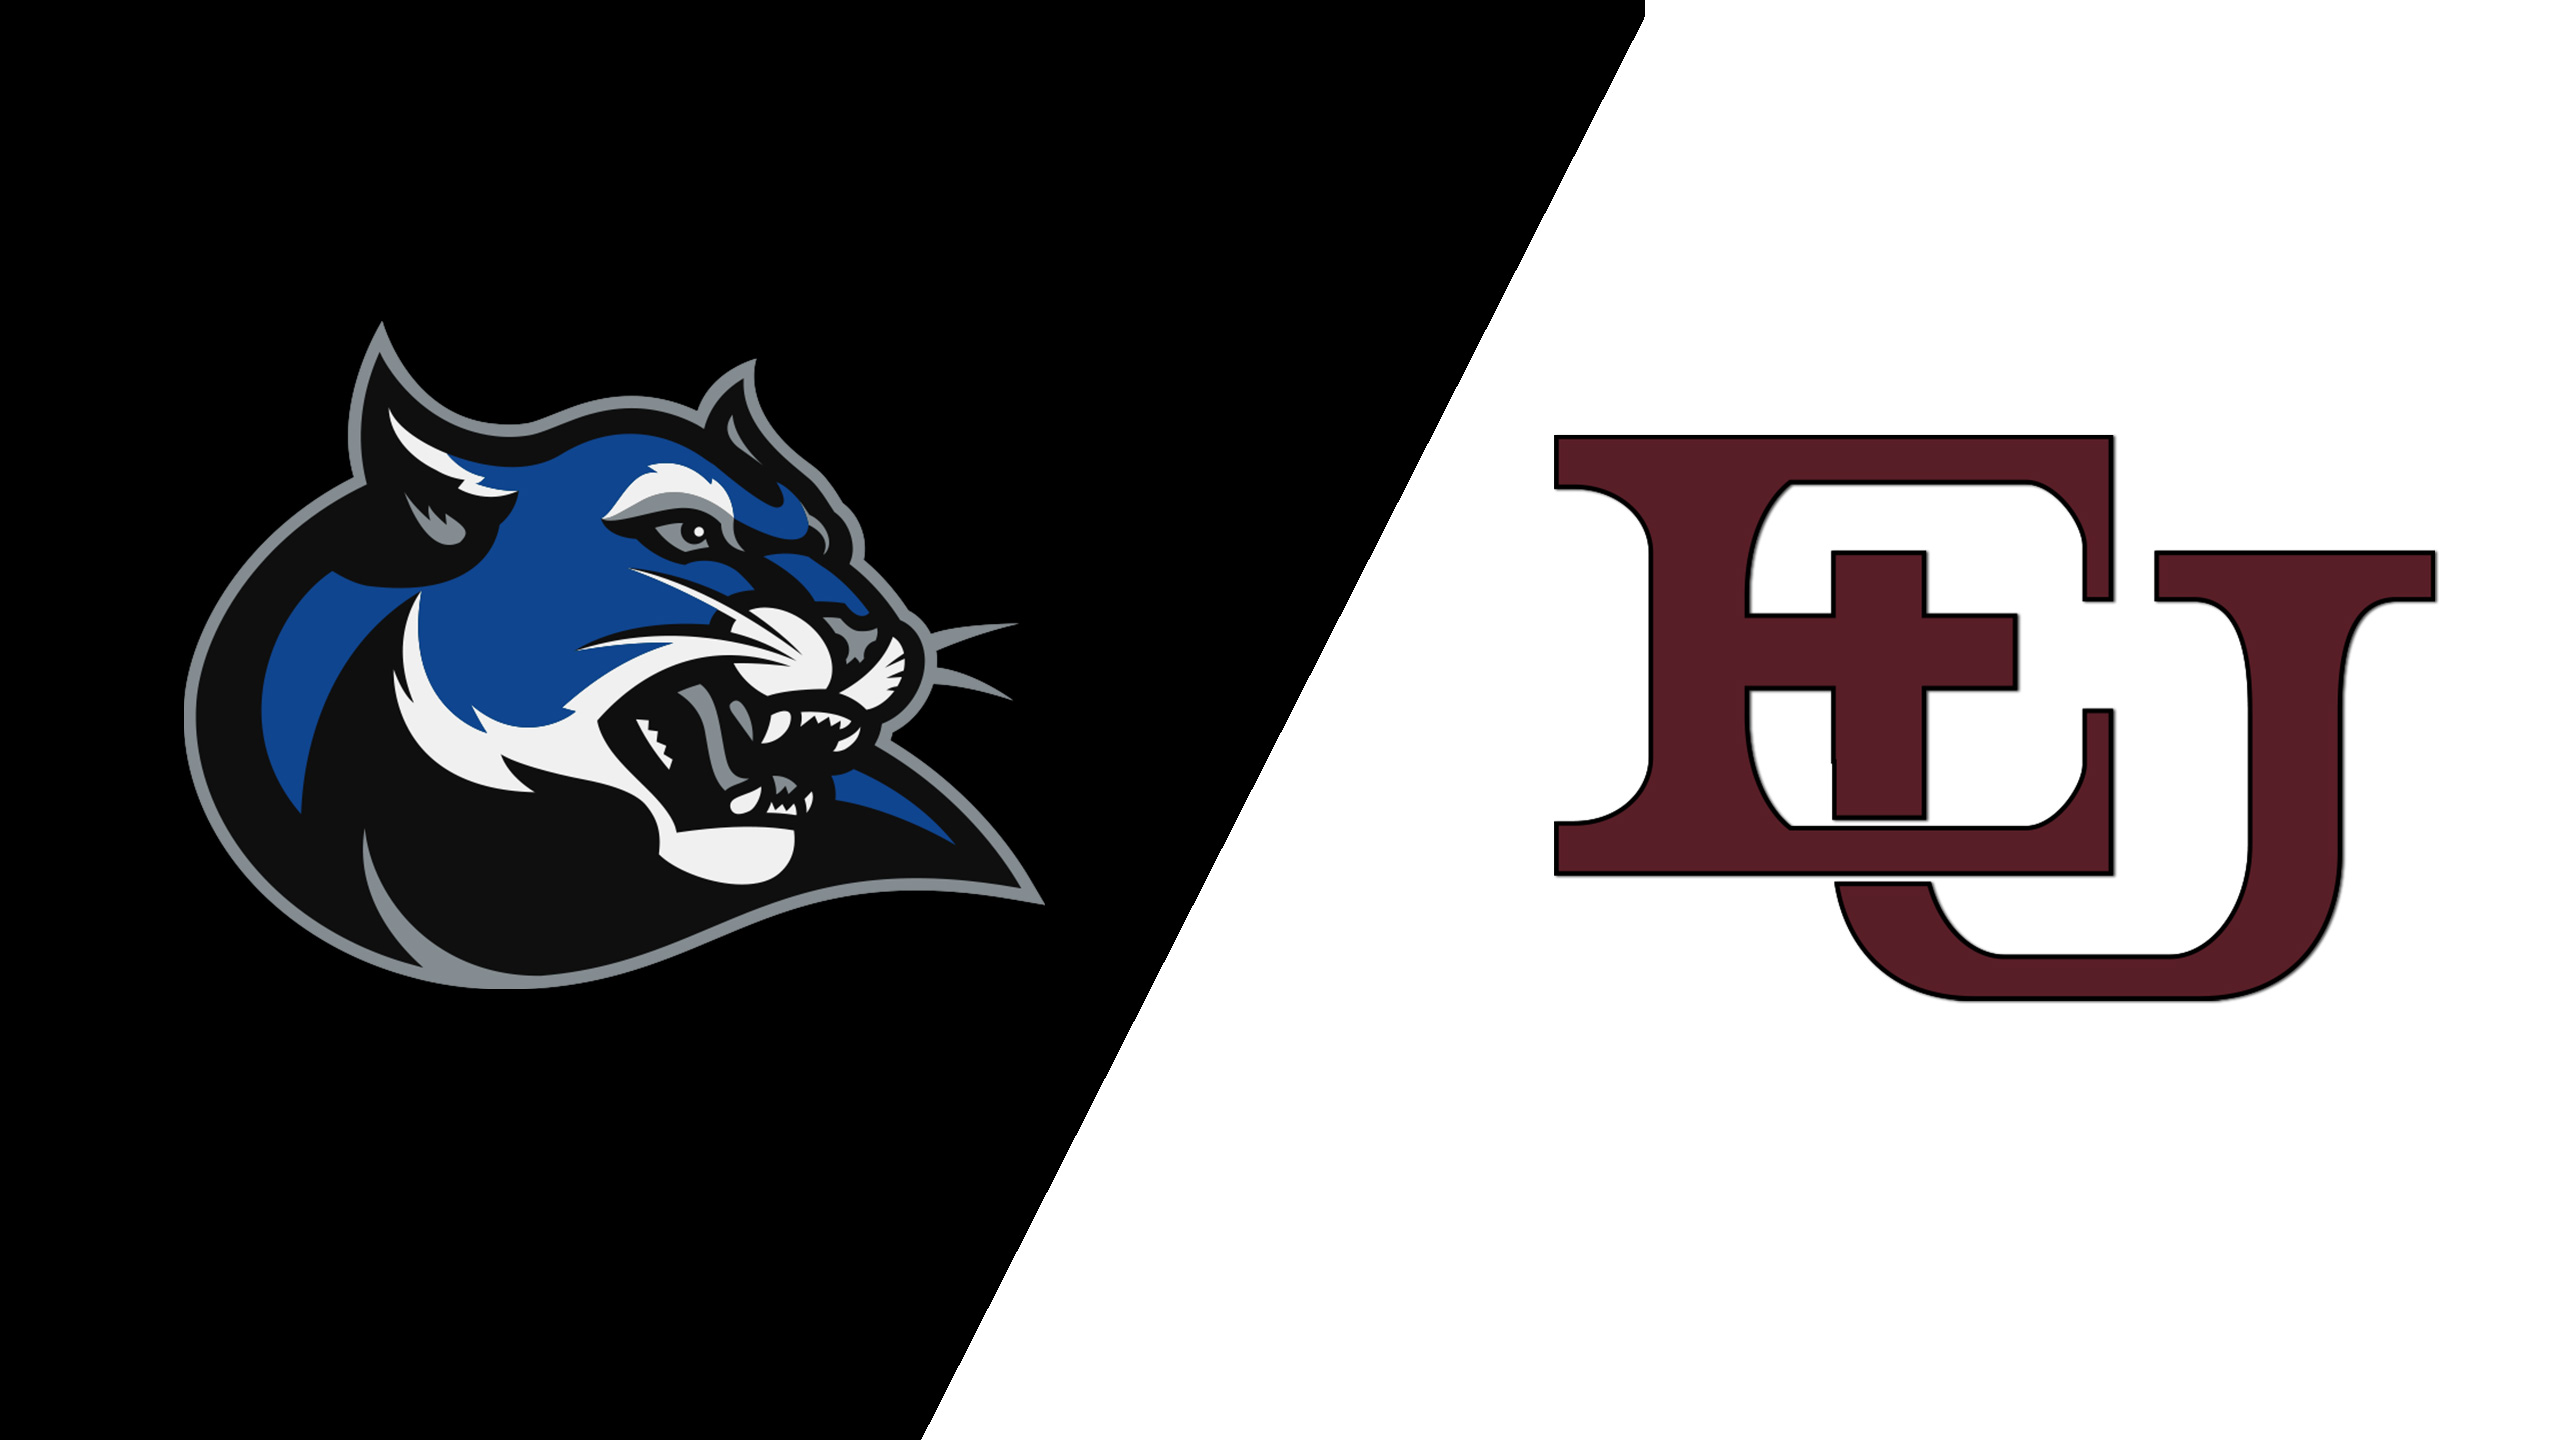 Culver-Stockton vs. Evangel (Football)